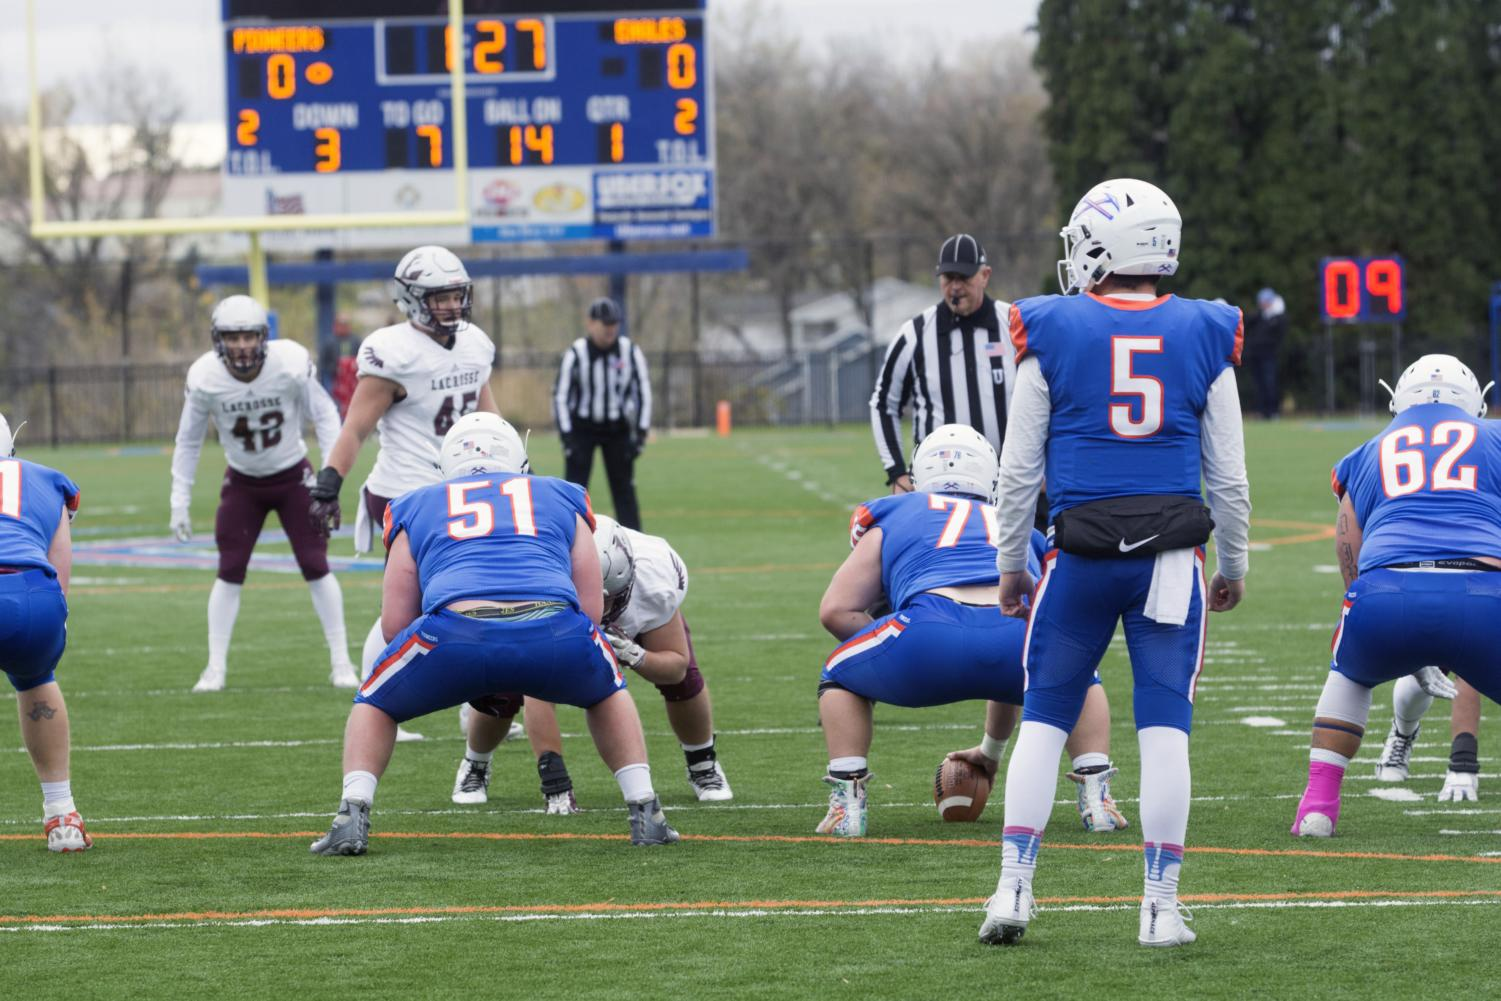 The Pioneers drove downfield in the first quarter of the game against  the Eagles.